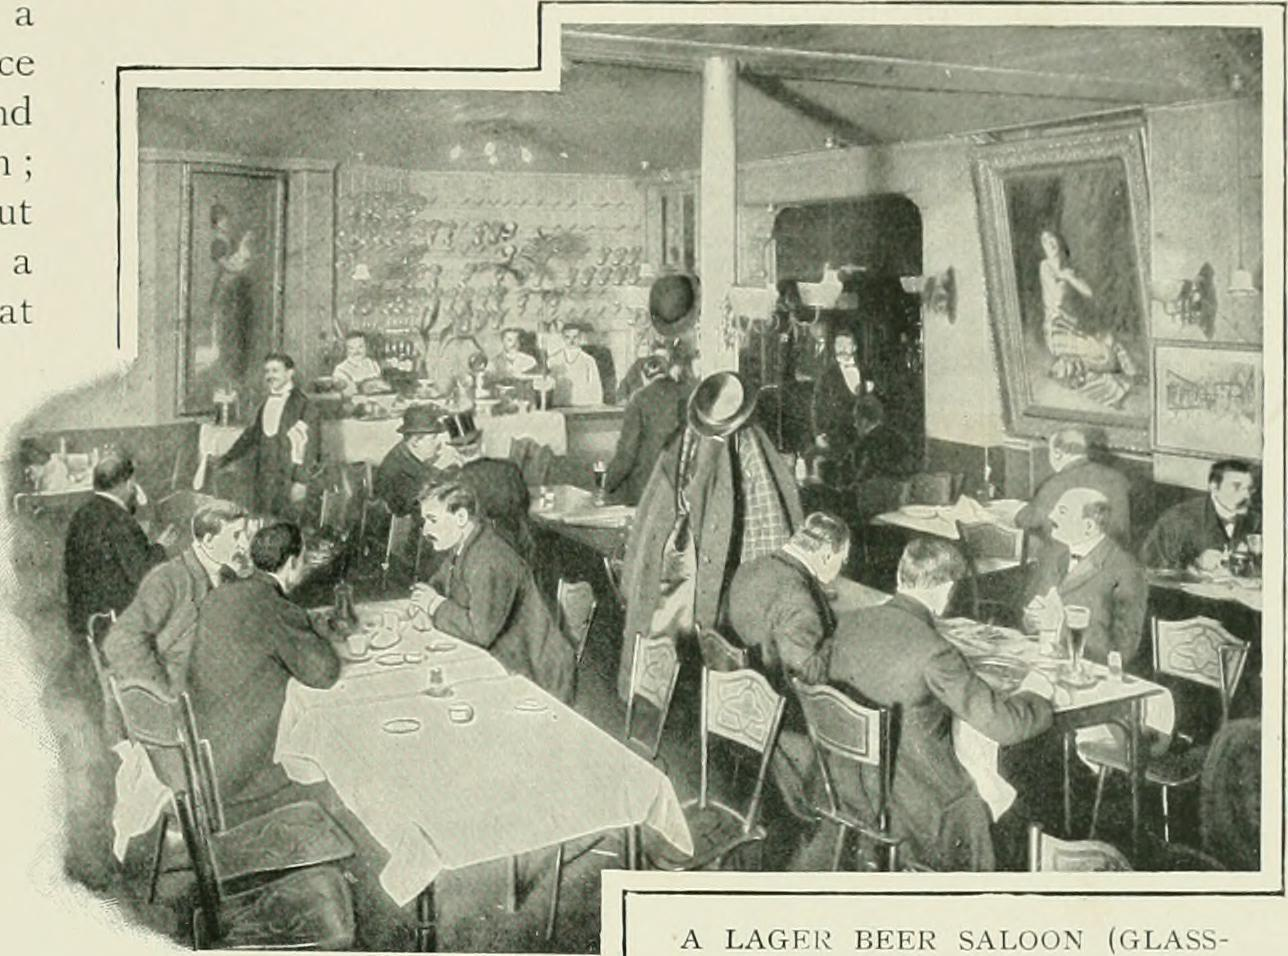 A lager beer saloon on Glasshouse Street in Soho, just off Regent Street.